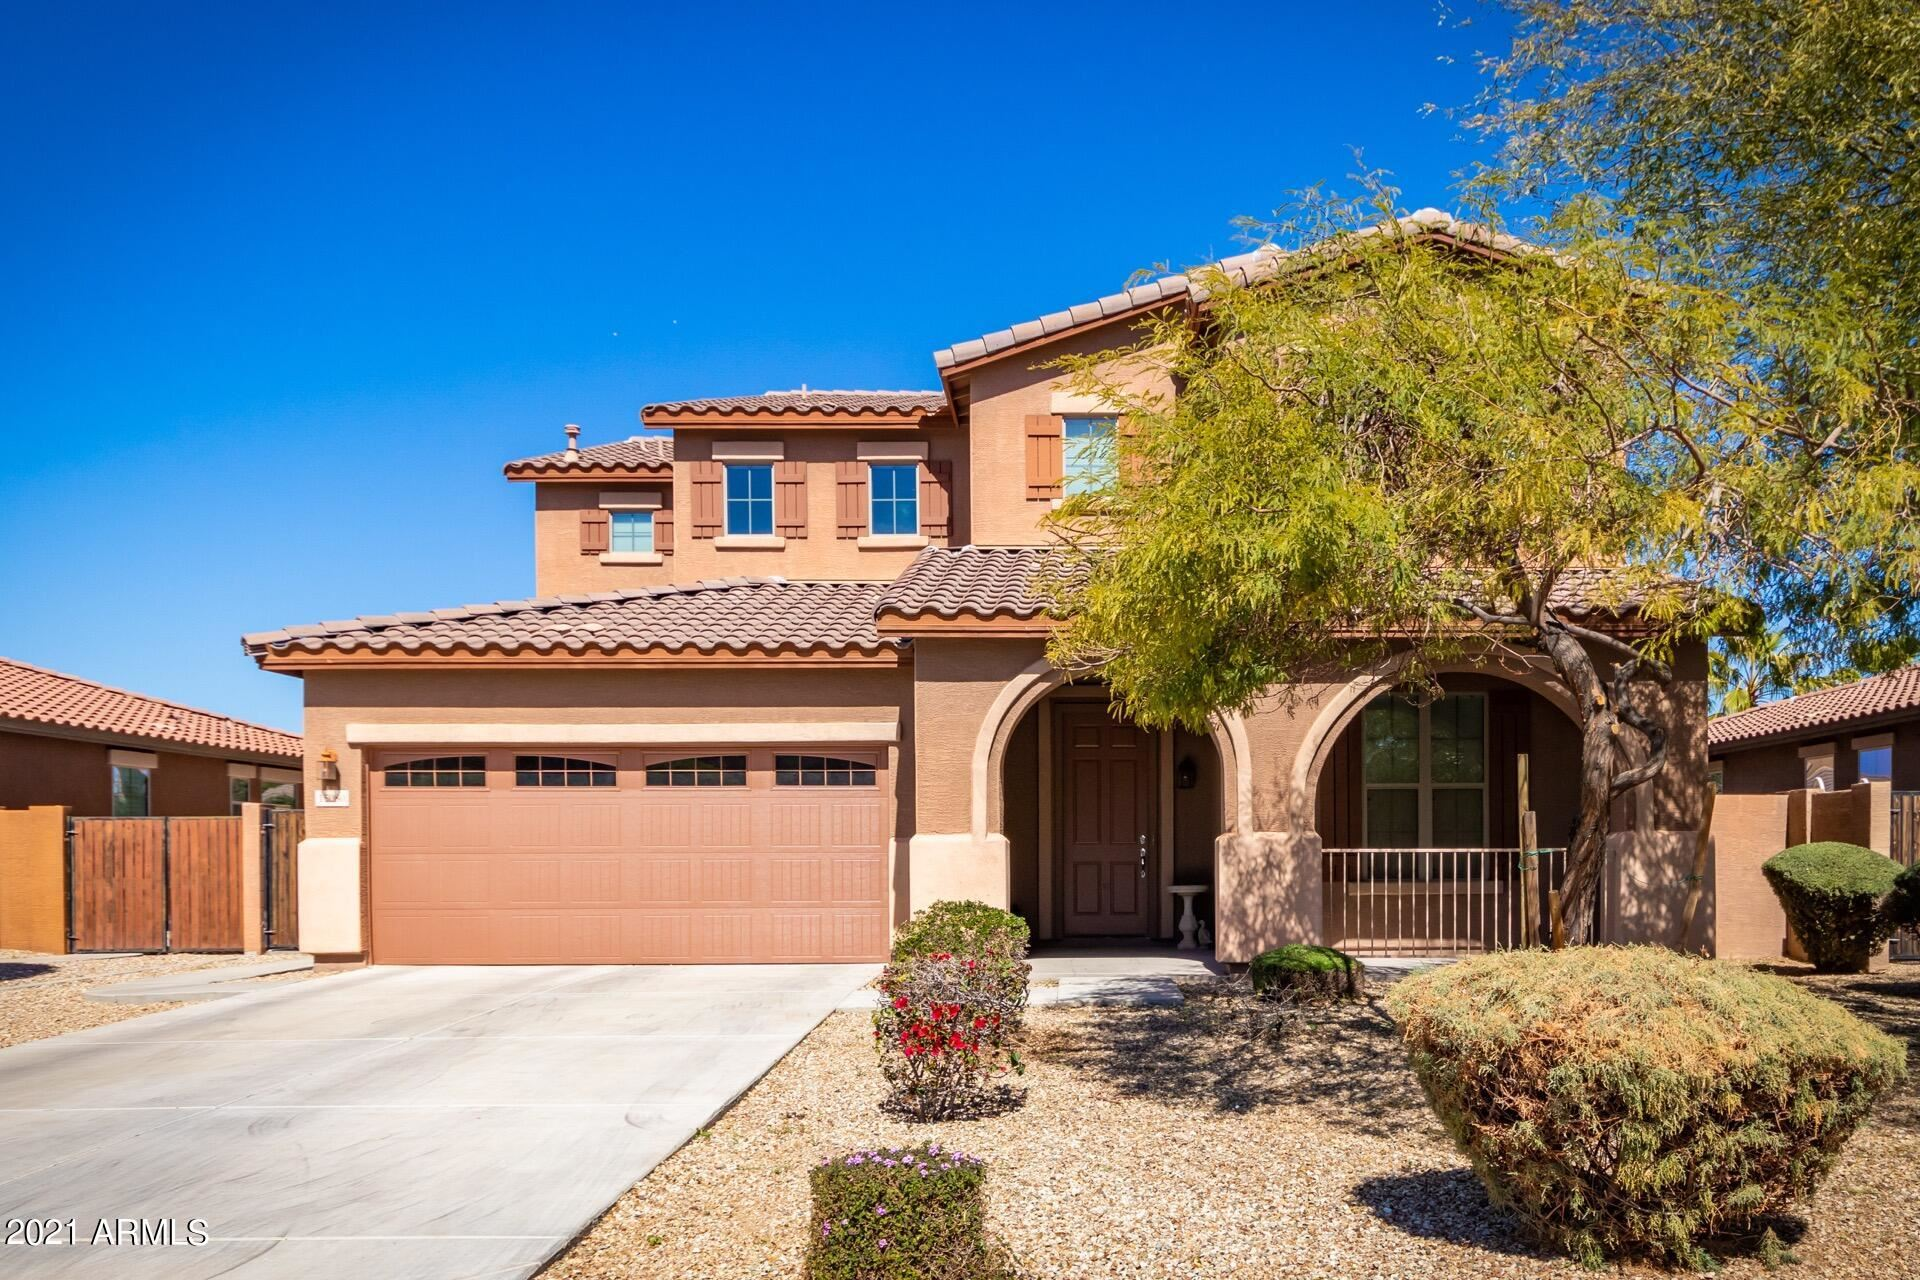 Photo of 15080 W GLENROSA Avenue, Goodyear, AZ 85395 (MLS # 6203729)